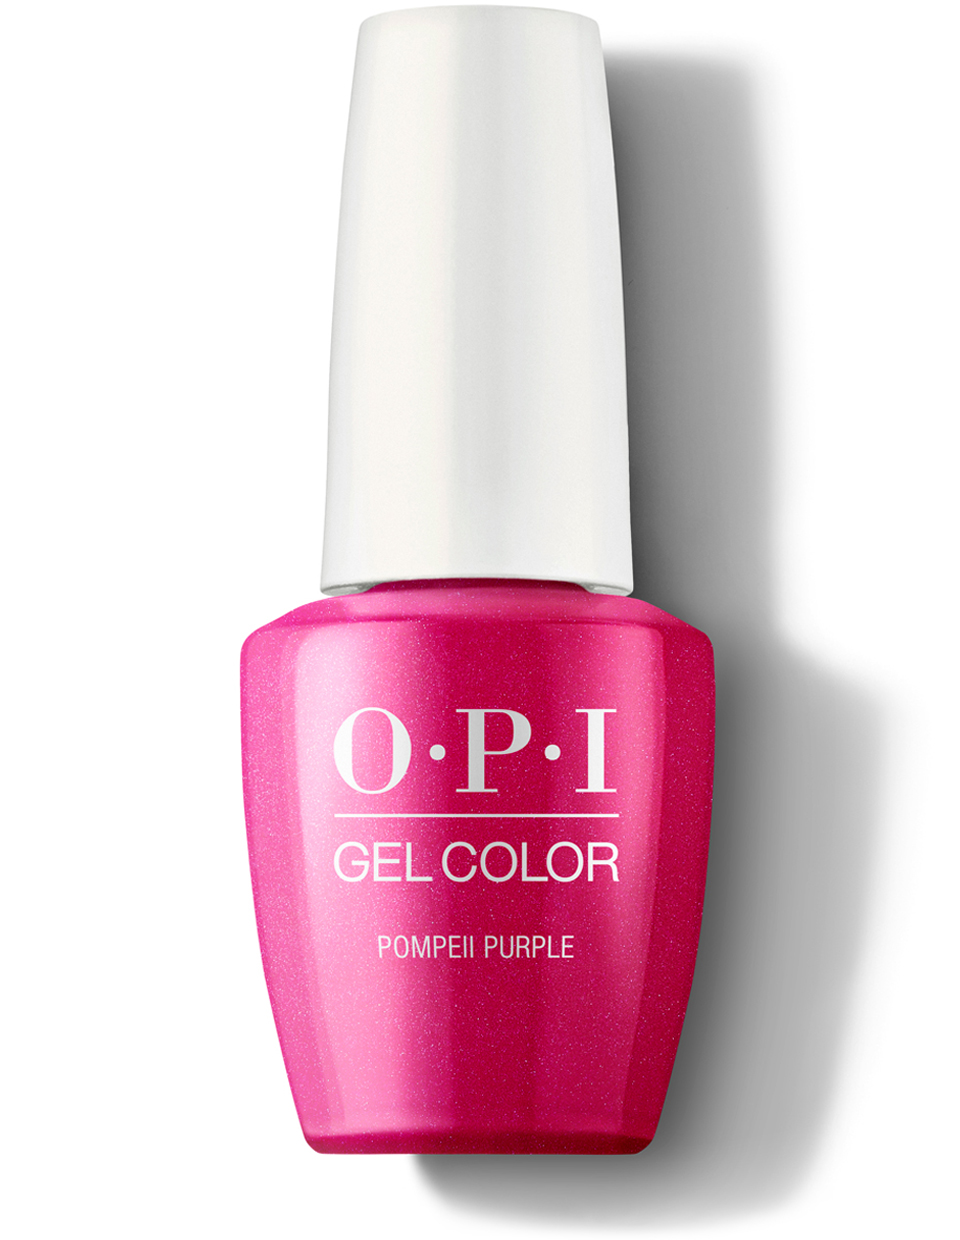 GEL COLOR POMPEII PURPLE OPI 15ML